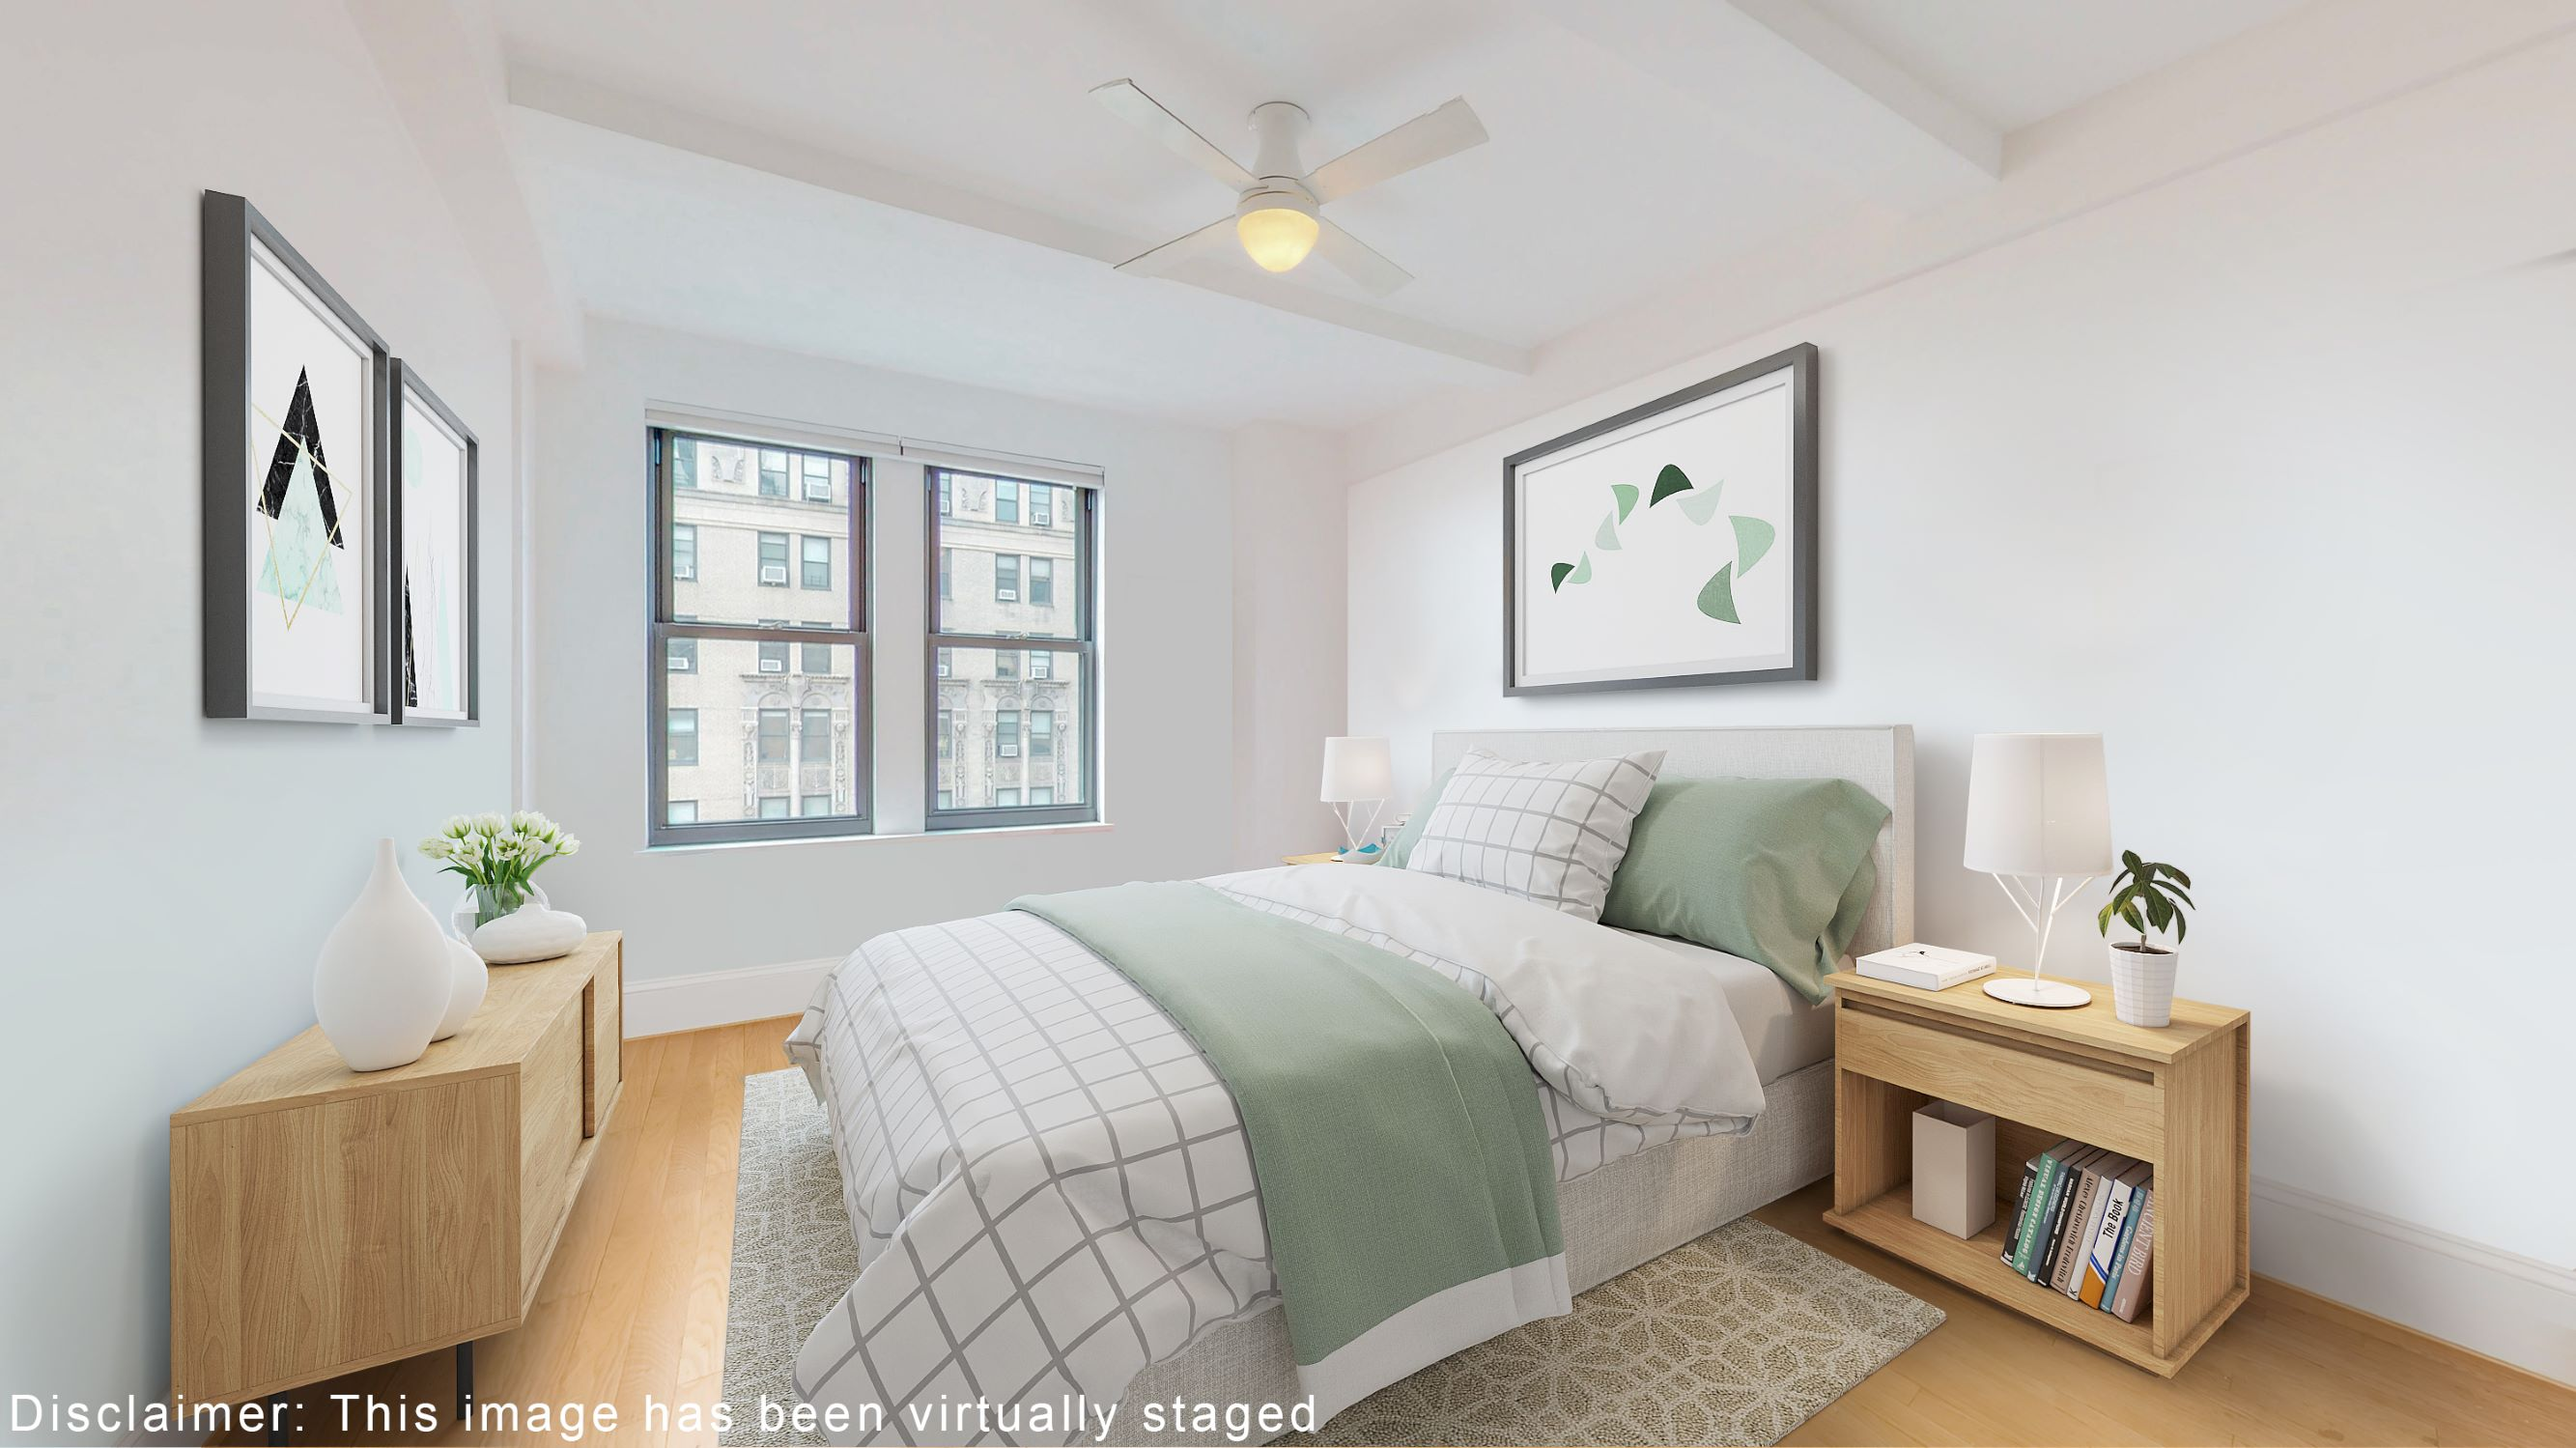 107 West 86th Street, New York, New York, New York, United States 10024, 2 Bedrooms Bedrooms, ,1.5 BathroomsBathrooms,Co-op,SOLD,West 86th Street,1134